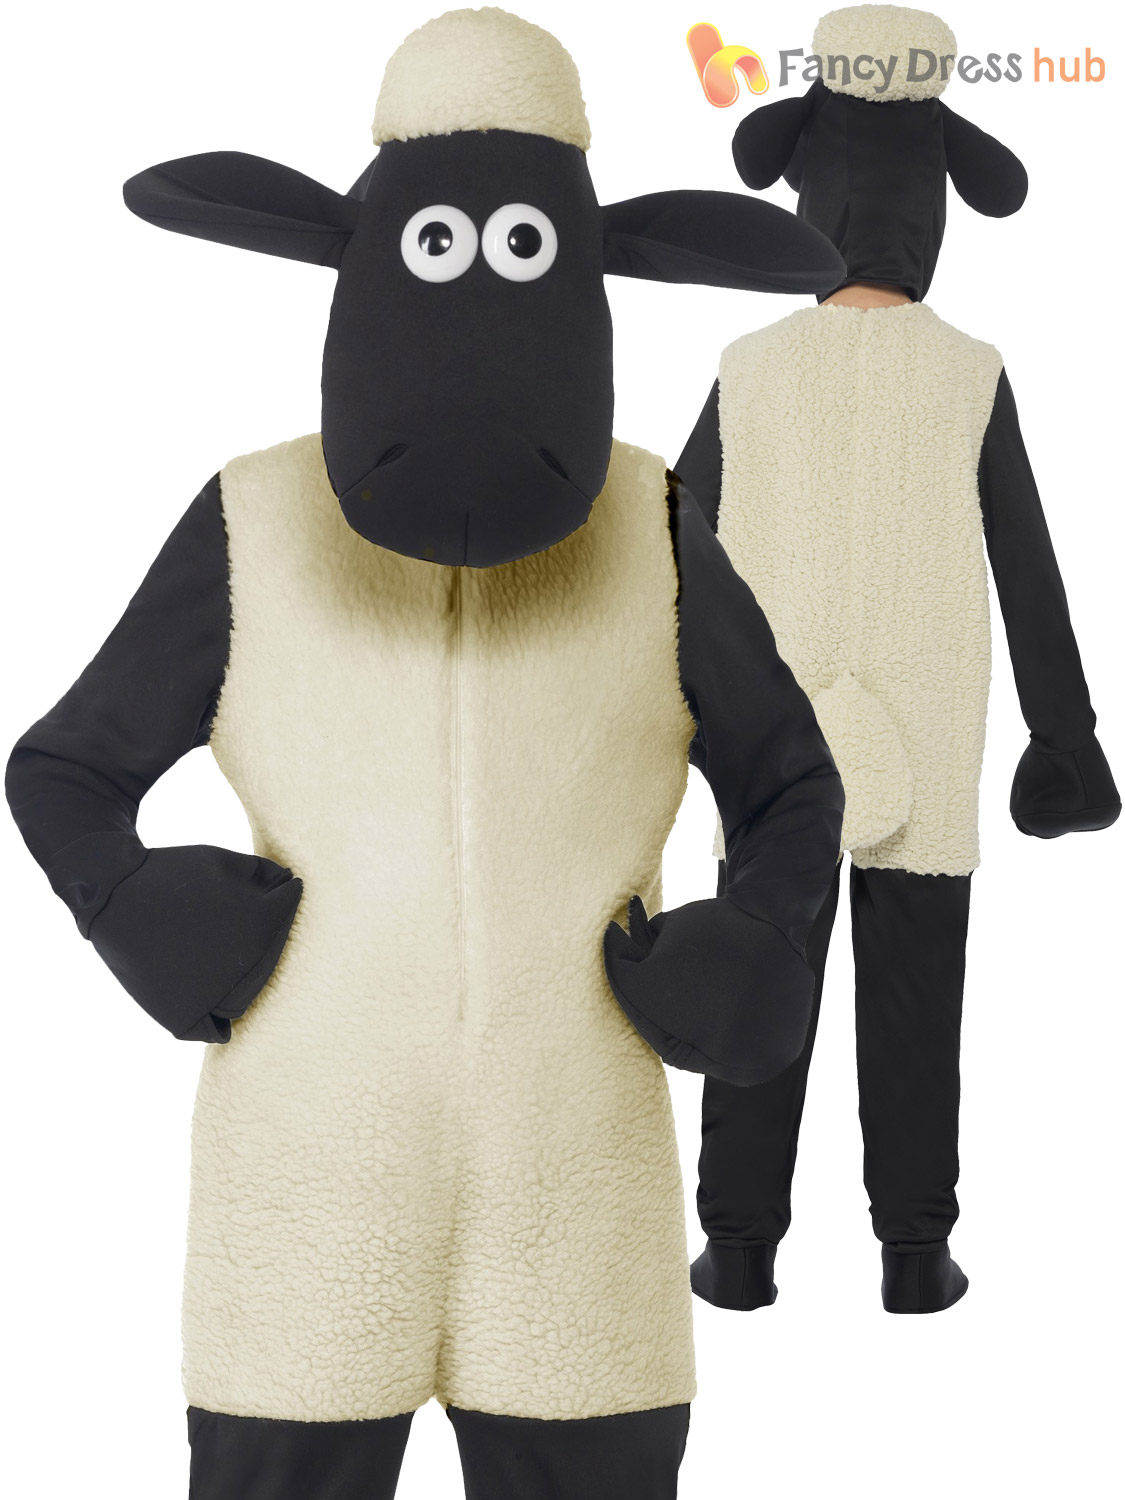 Childs Shaun the Sheep Costume Boy Girl Wallace and Gromit Fancy Dress Easter